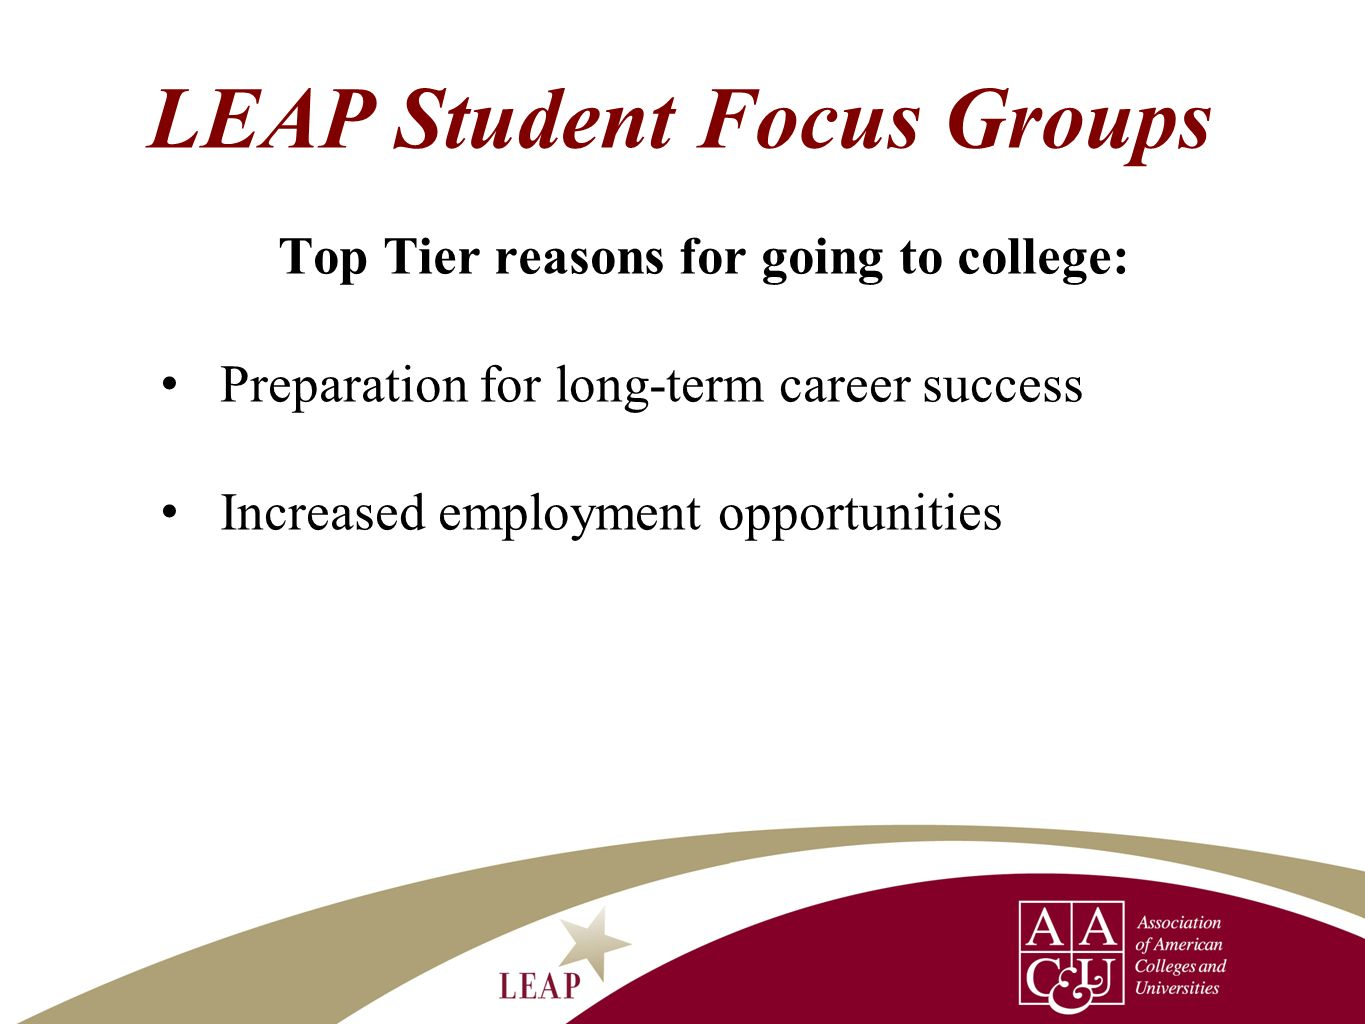 LEAP Student Focus Groups Top Tier reasons for going to college: Preparation for long-term career success Increased employment opportunities